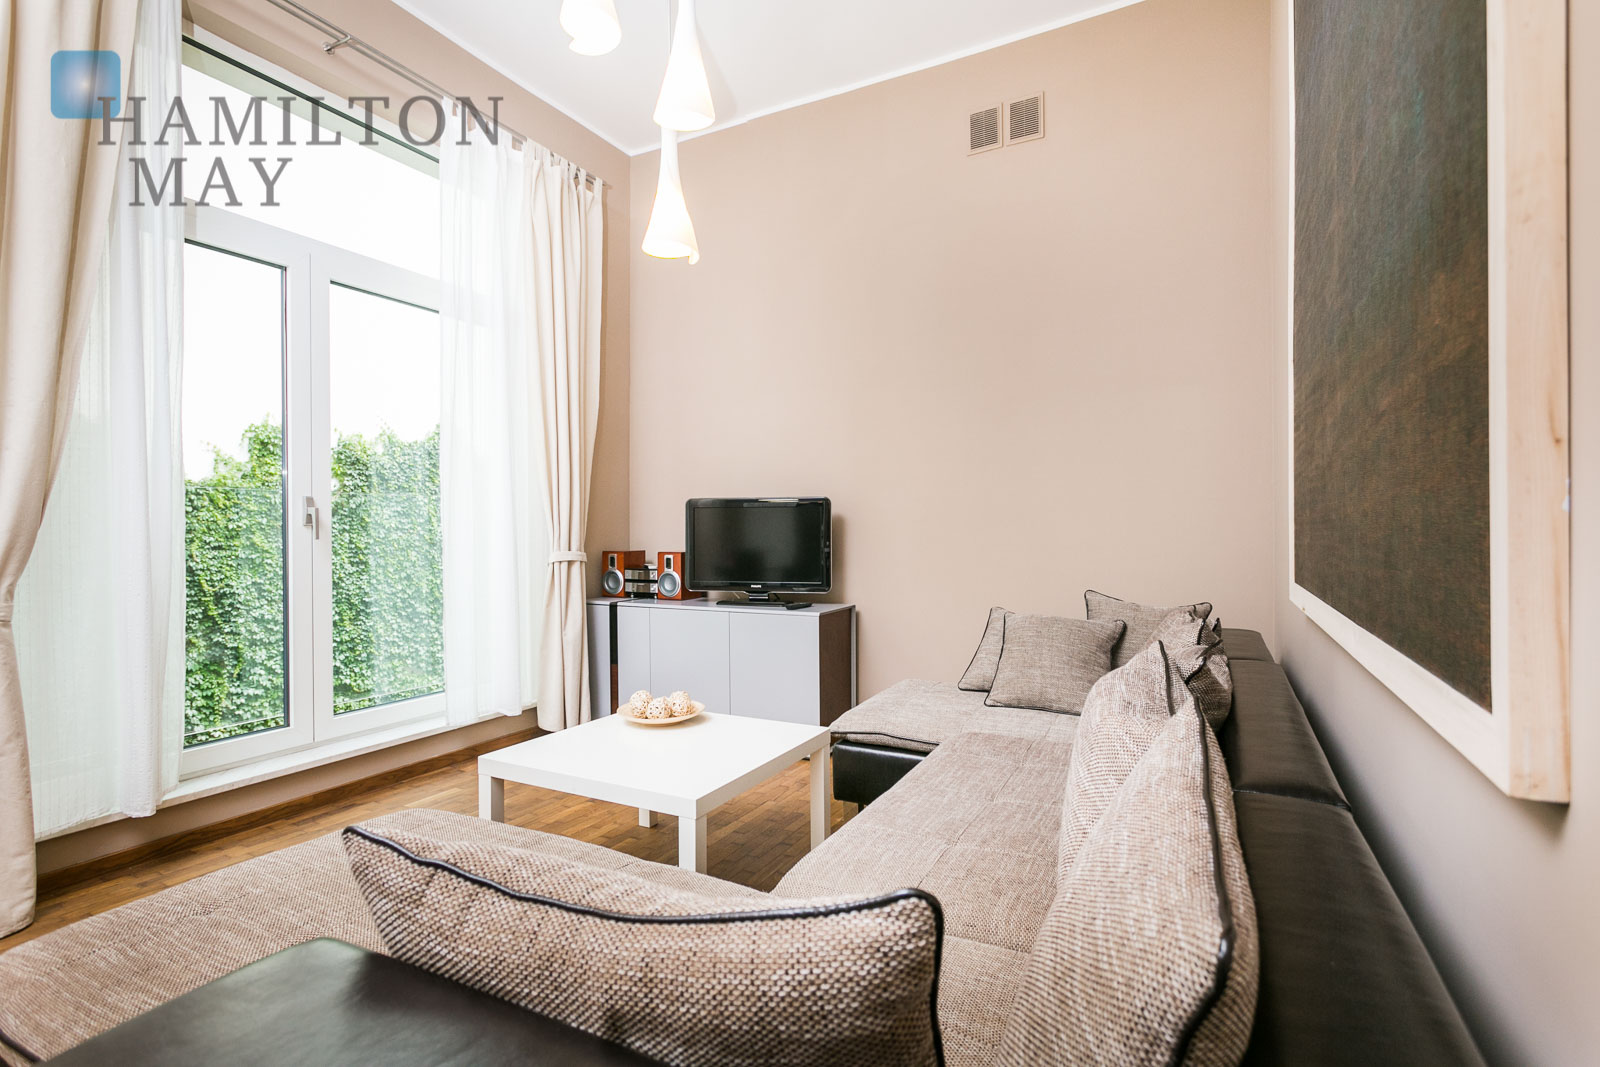 The luxuriously equipped, air-conditioned apartment in a modern building in the city center Krakow for rent